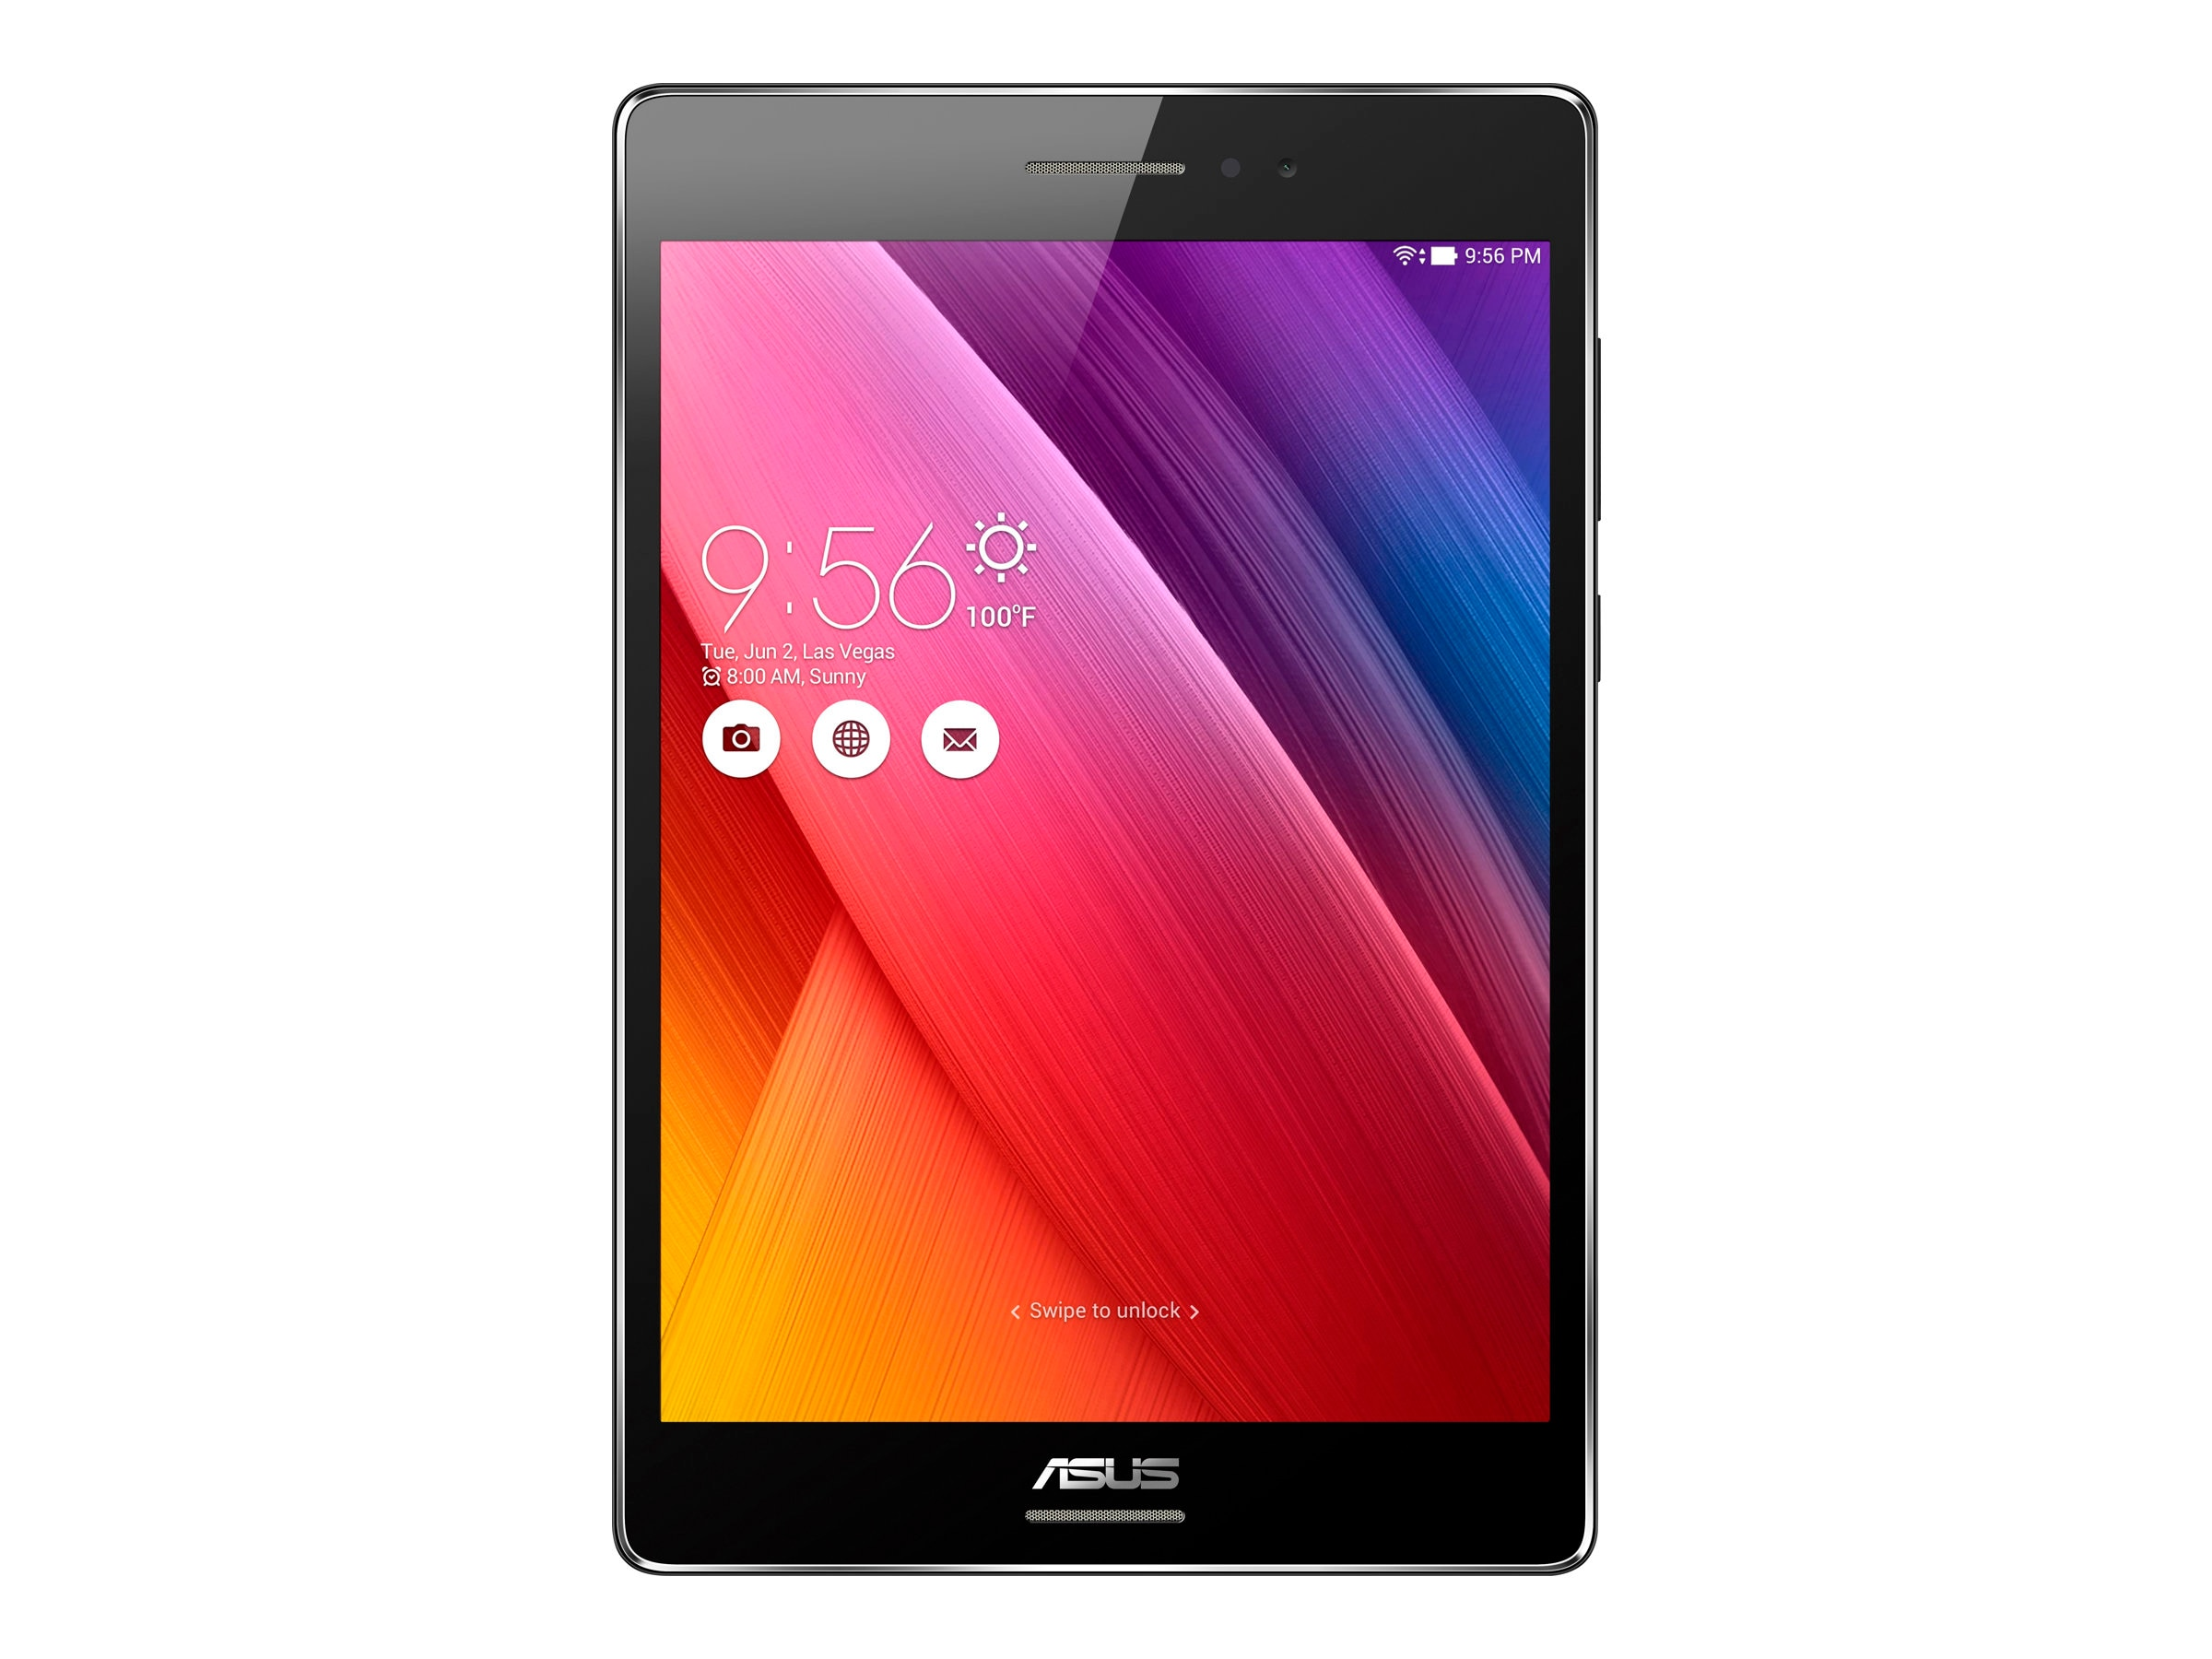 Asus Tablet Celeron 3200 1GB 16GB 8